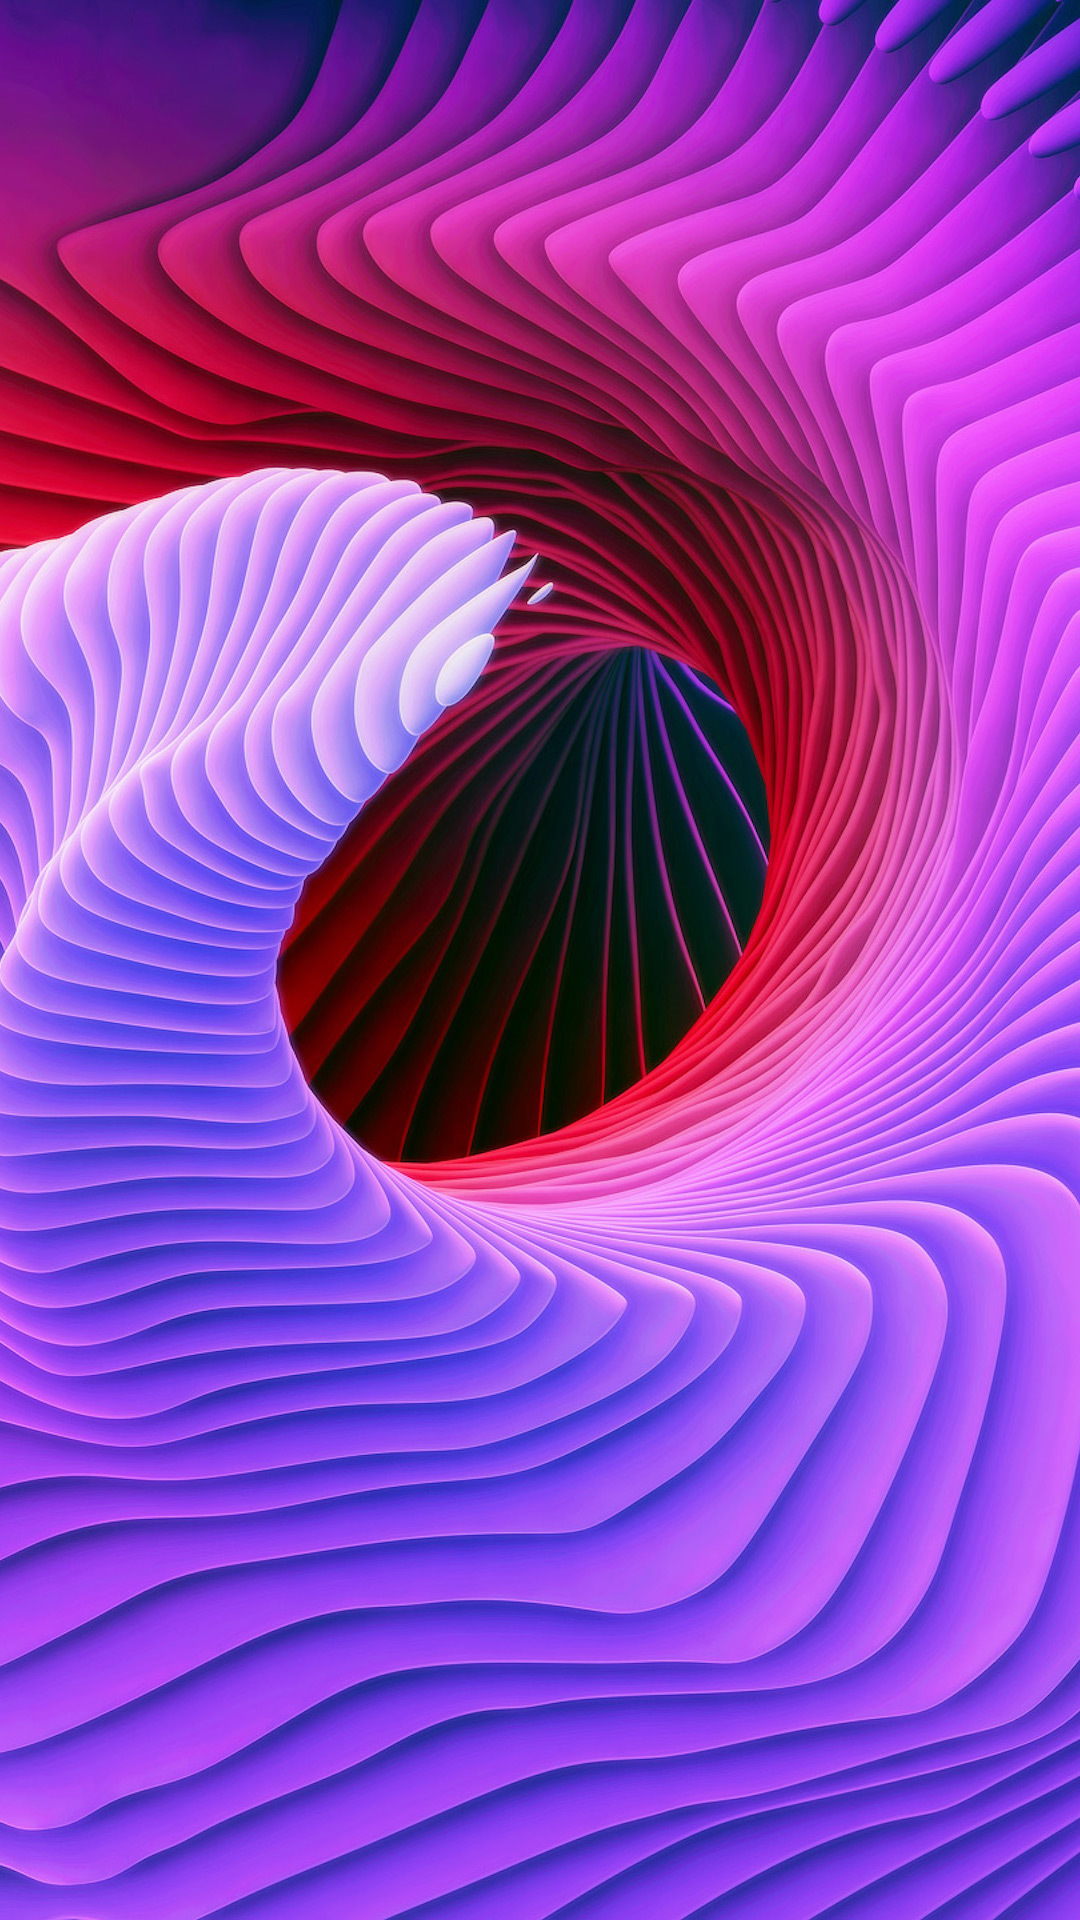 Samsung Galaxy J7 2017 Wallpapers: Samsung Galaxy A5 2017 Wallpaper With Abstract Design